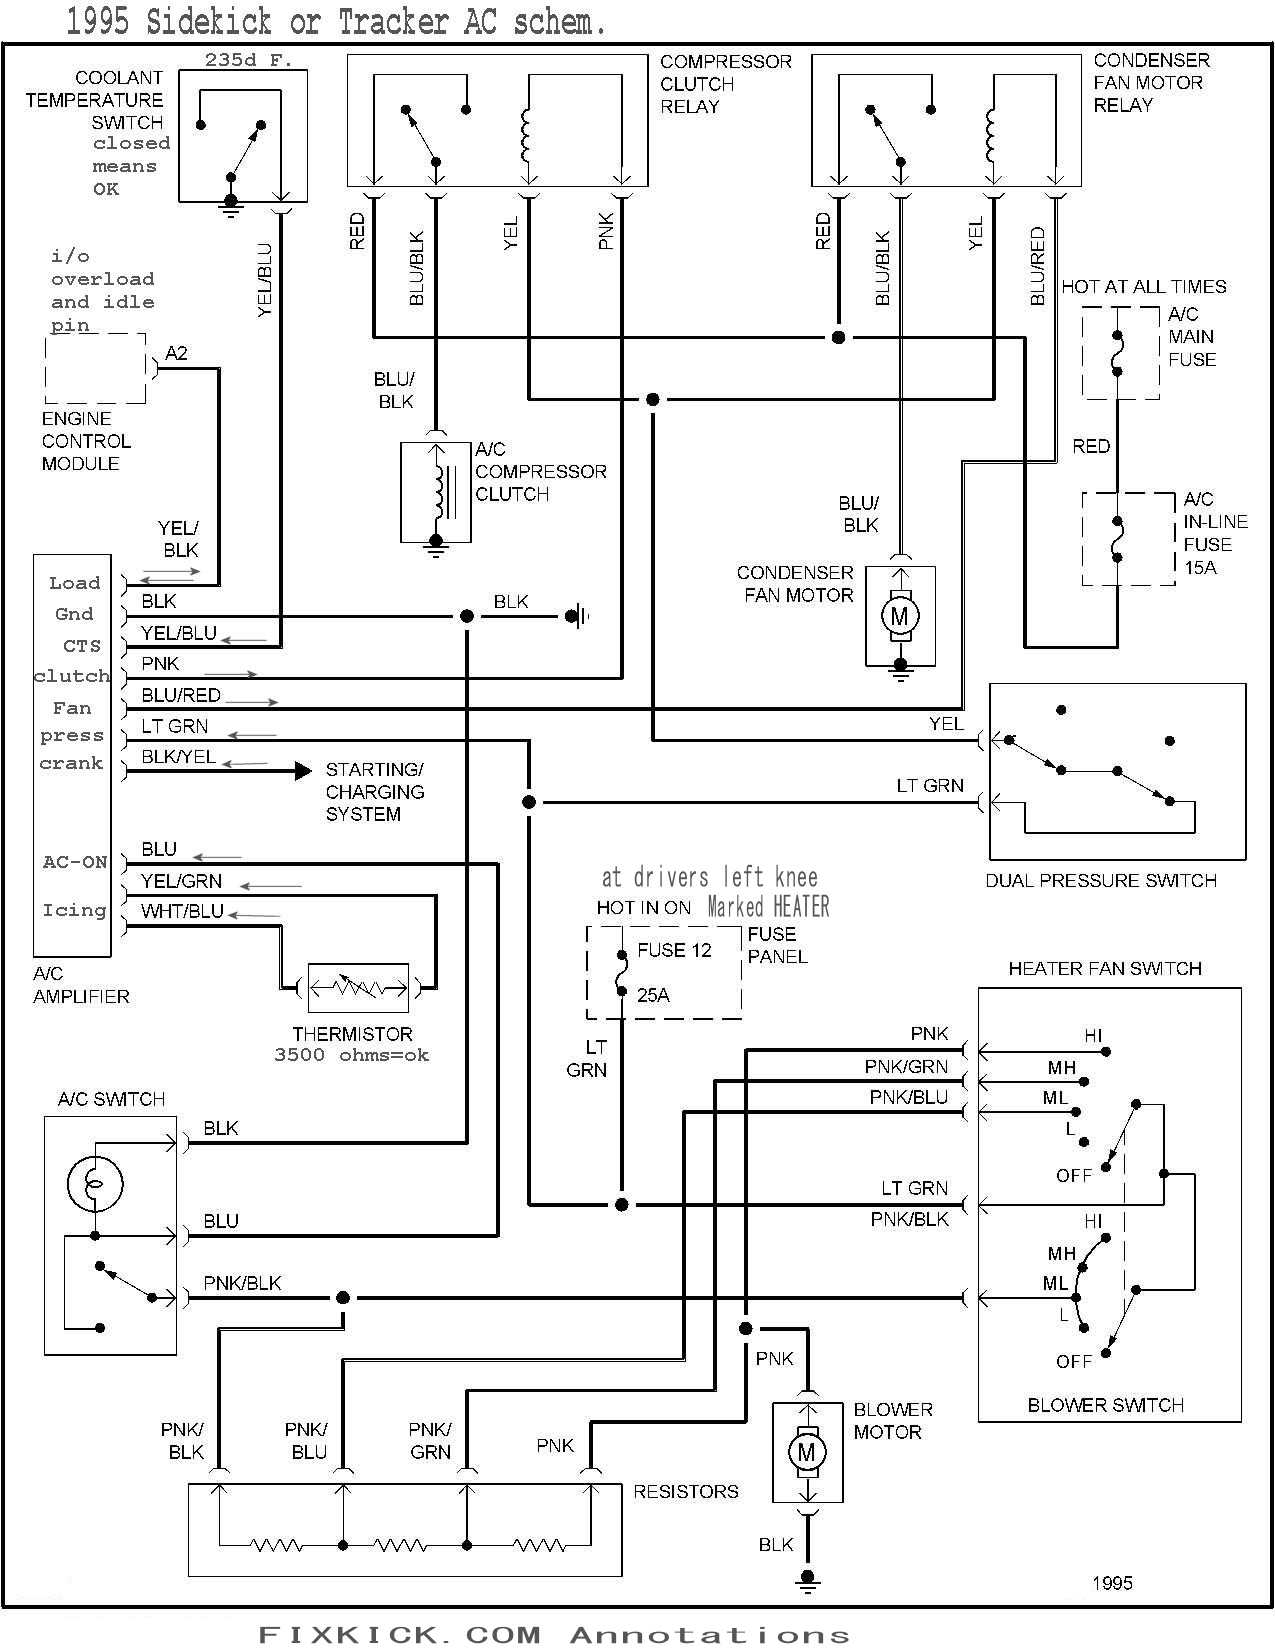 Suzuki Grand Vitara Ac Compressor Wiring Diagram